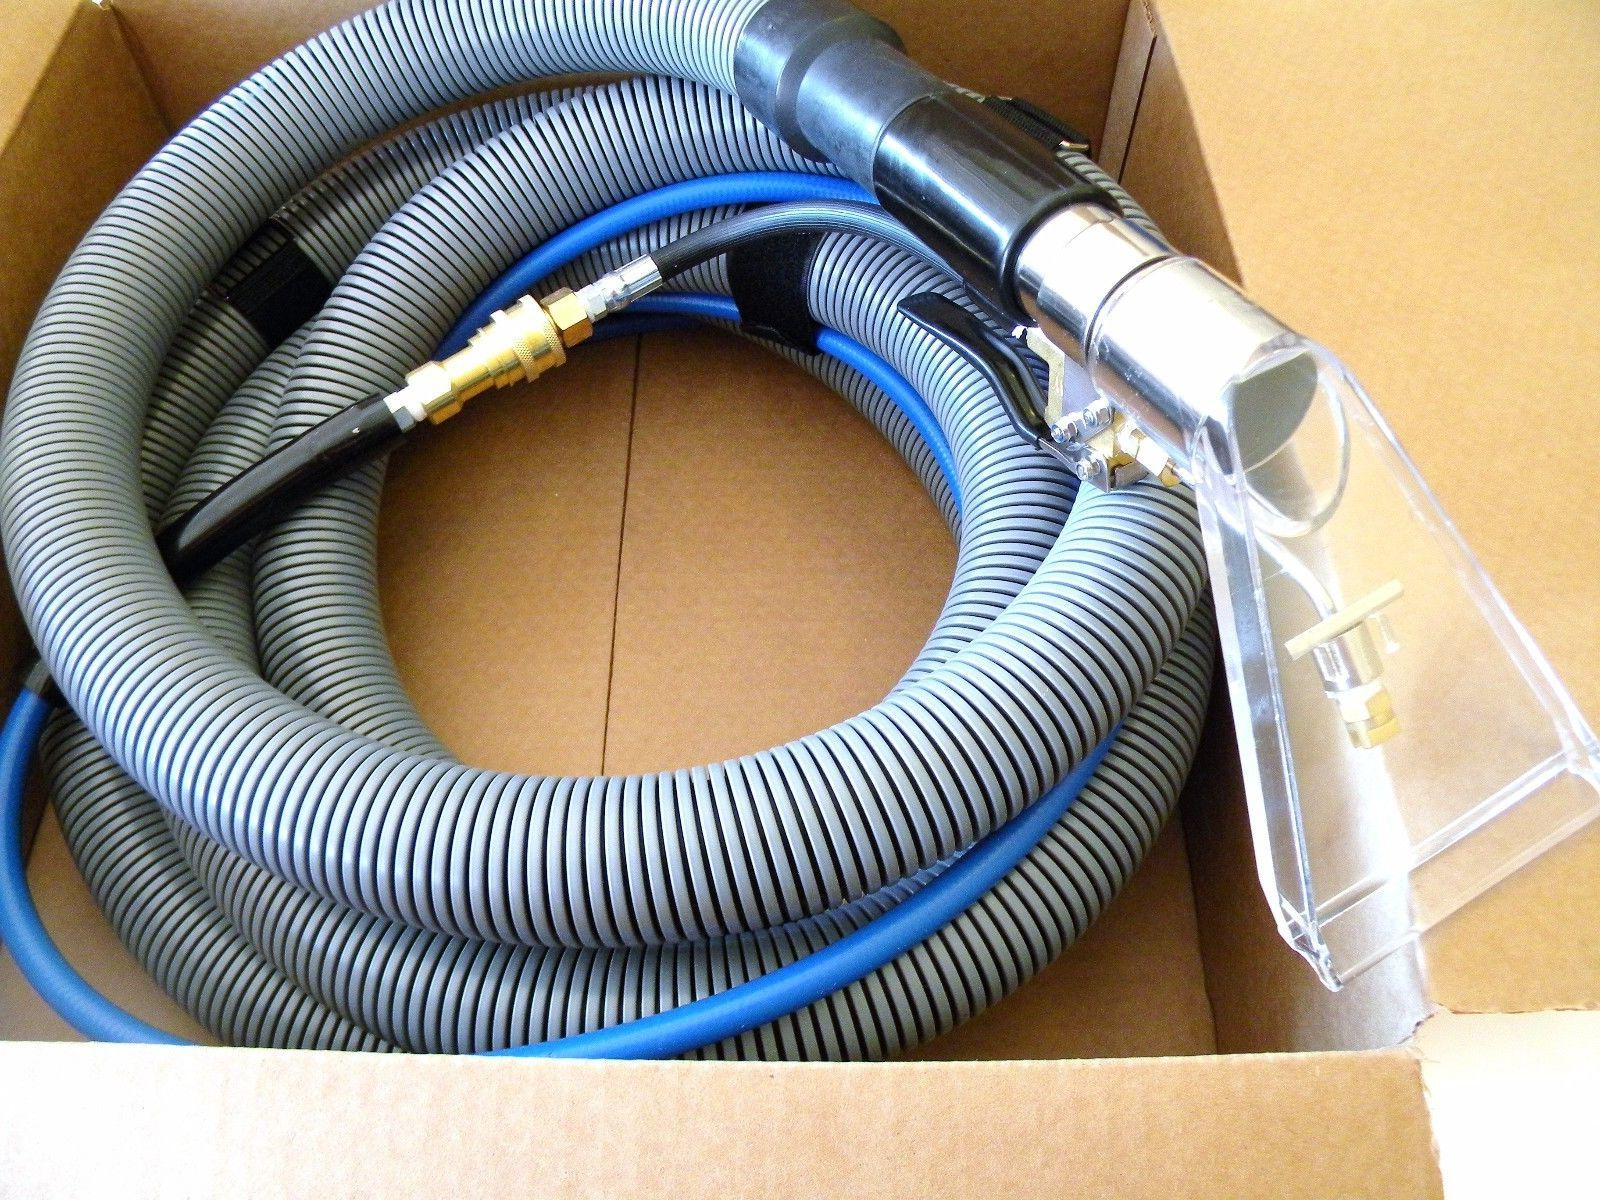 Carpet Cleaning Through Tool Hoses